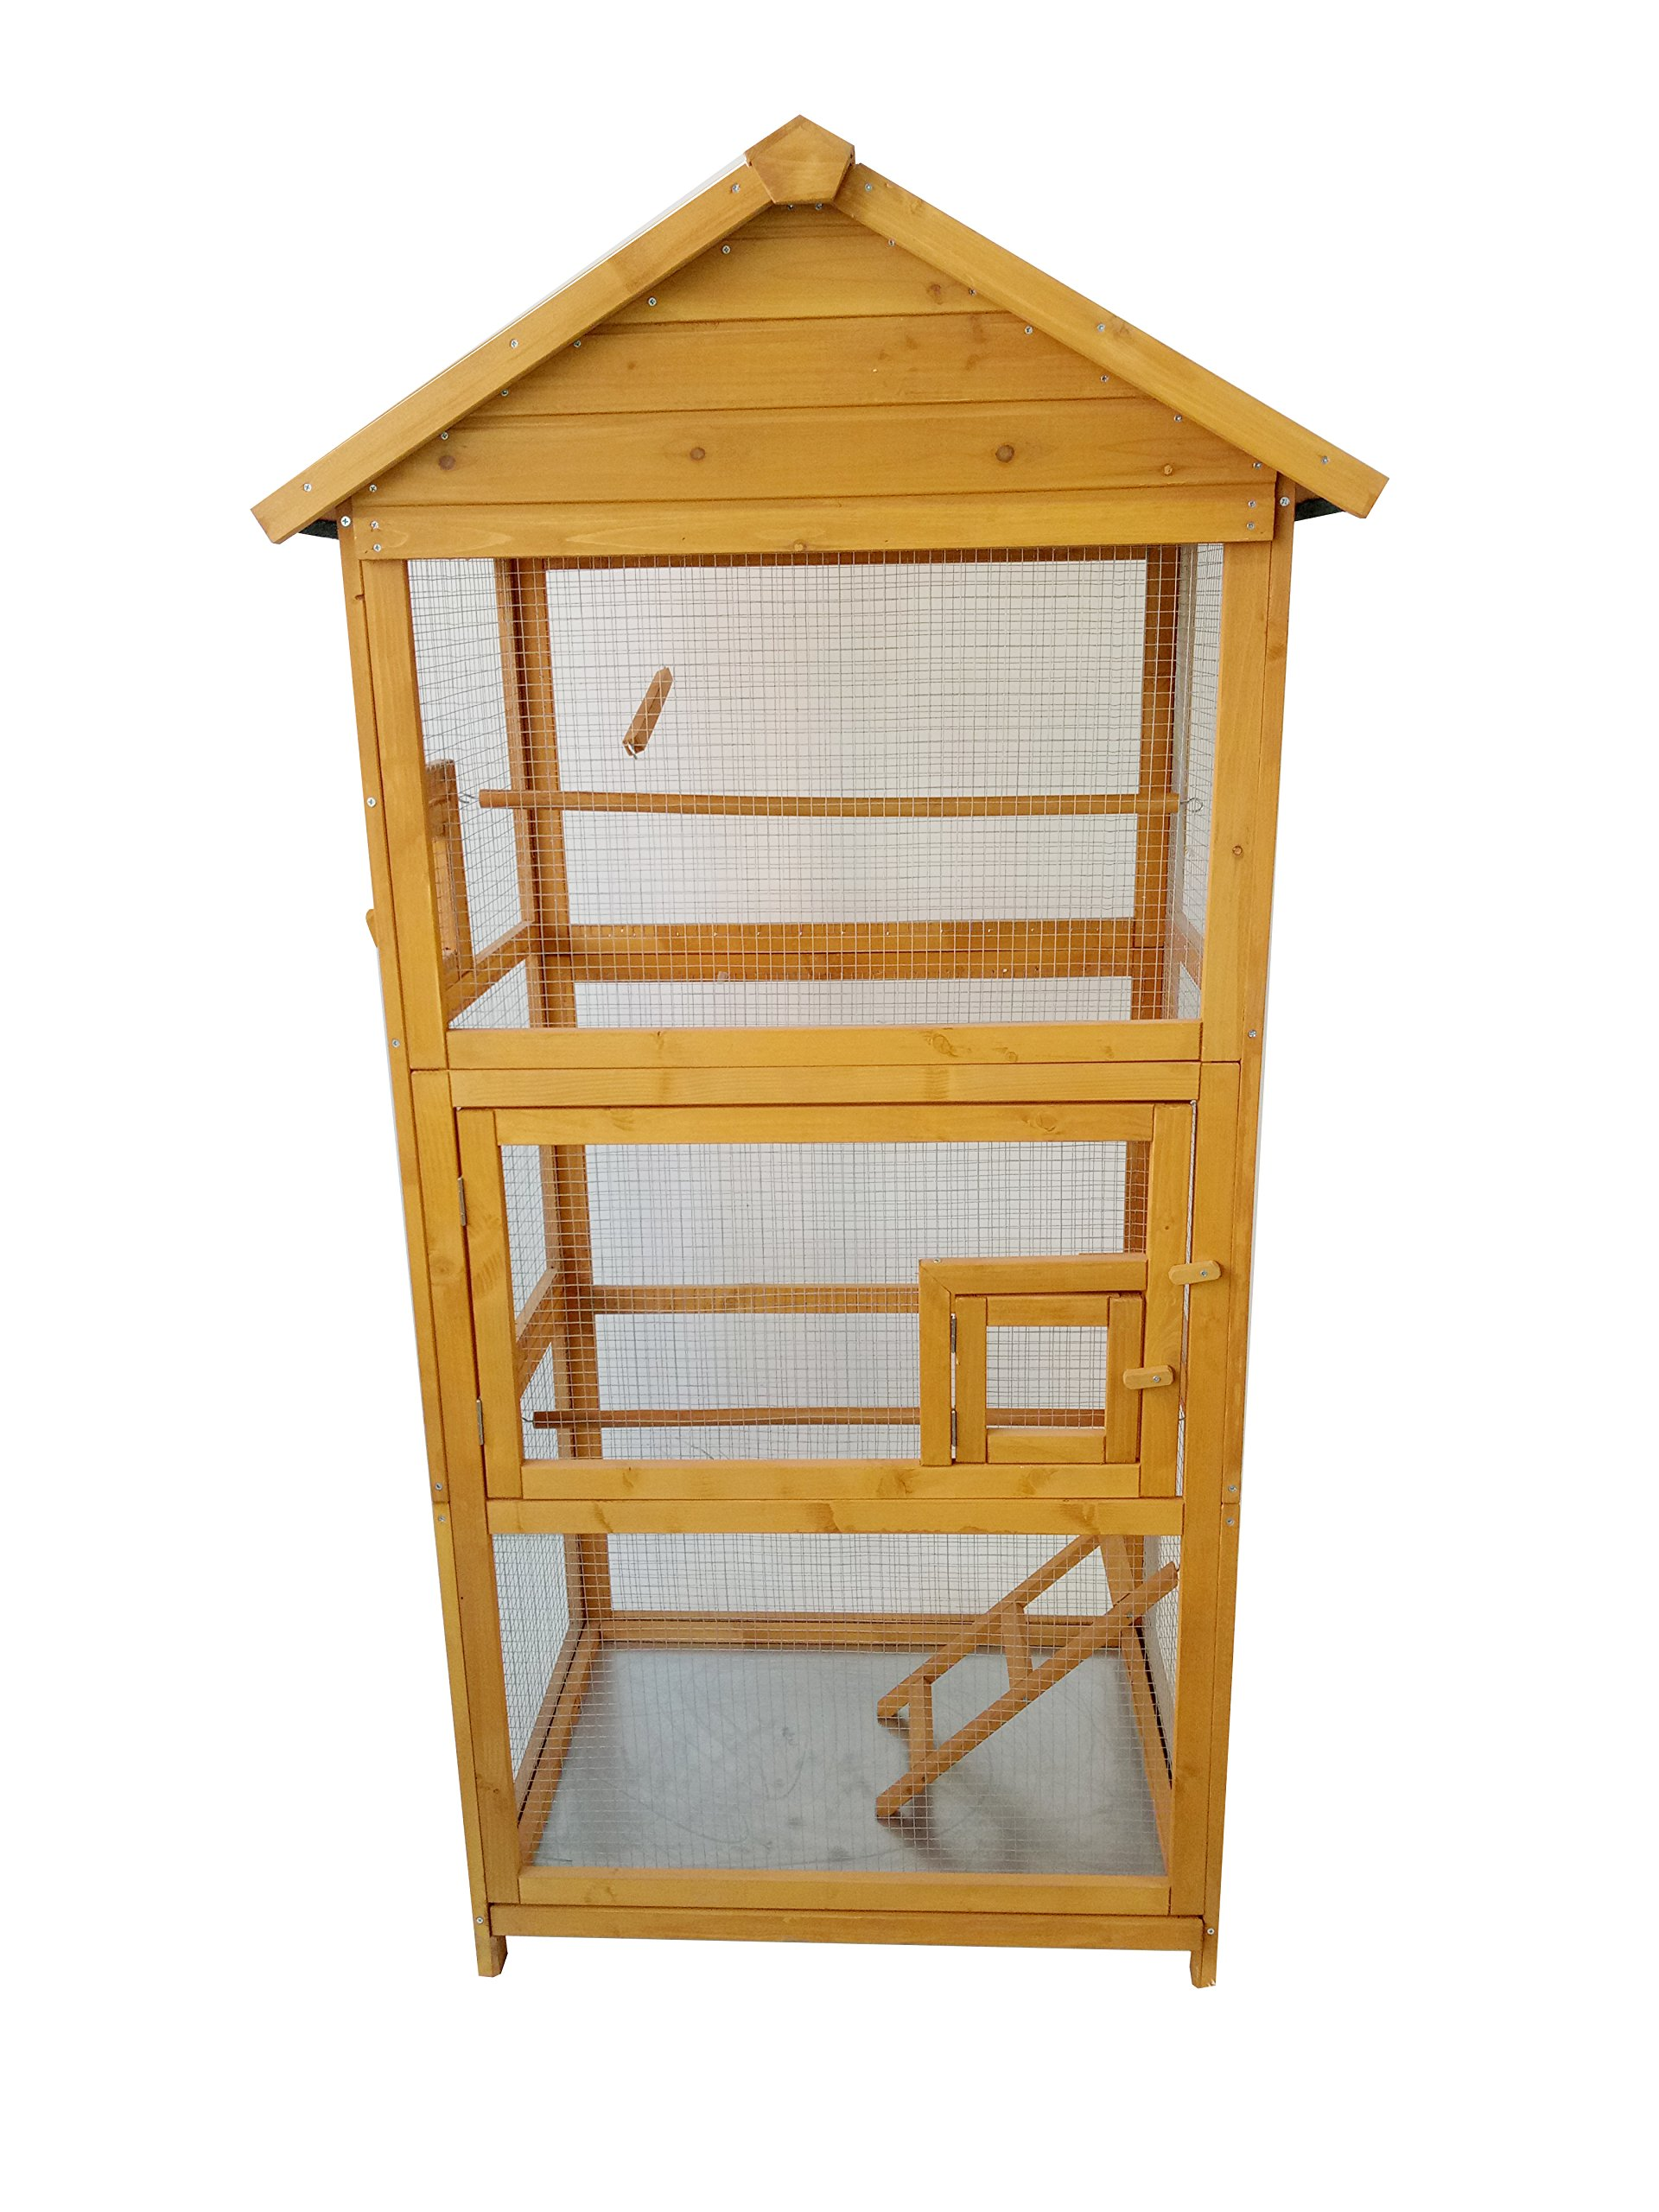 MCombo 70'' Wood Bird Cage Play House Parrot Finch Cockatoo Macaw Aviary Pet Supply 6011-0011 (Natural Color)